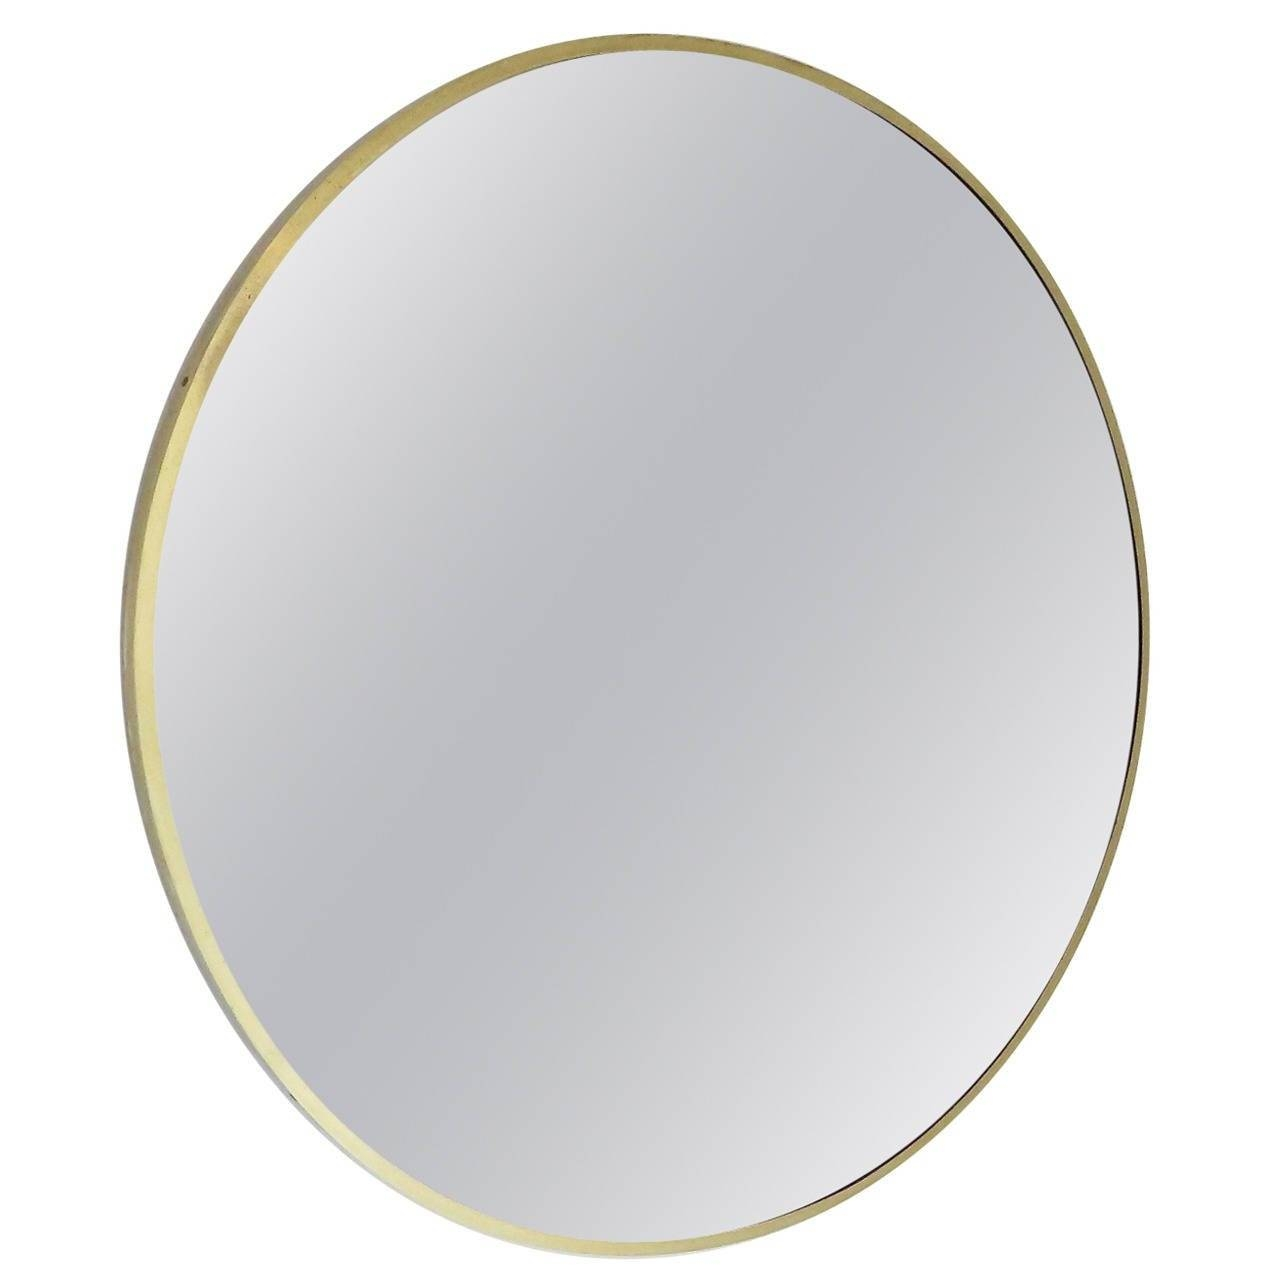 Italian Brass Beveled Round Mirror With Bronze Tone Glass At 1Stdibs intended for Round Bevelled Mirrors (Image 9 of 25)